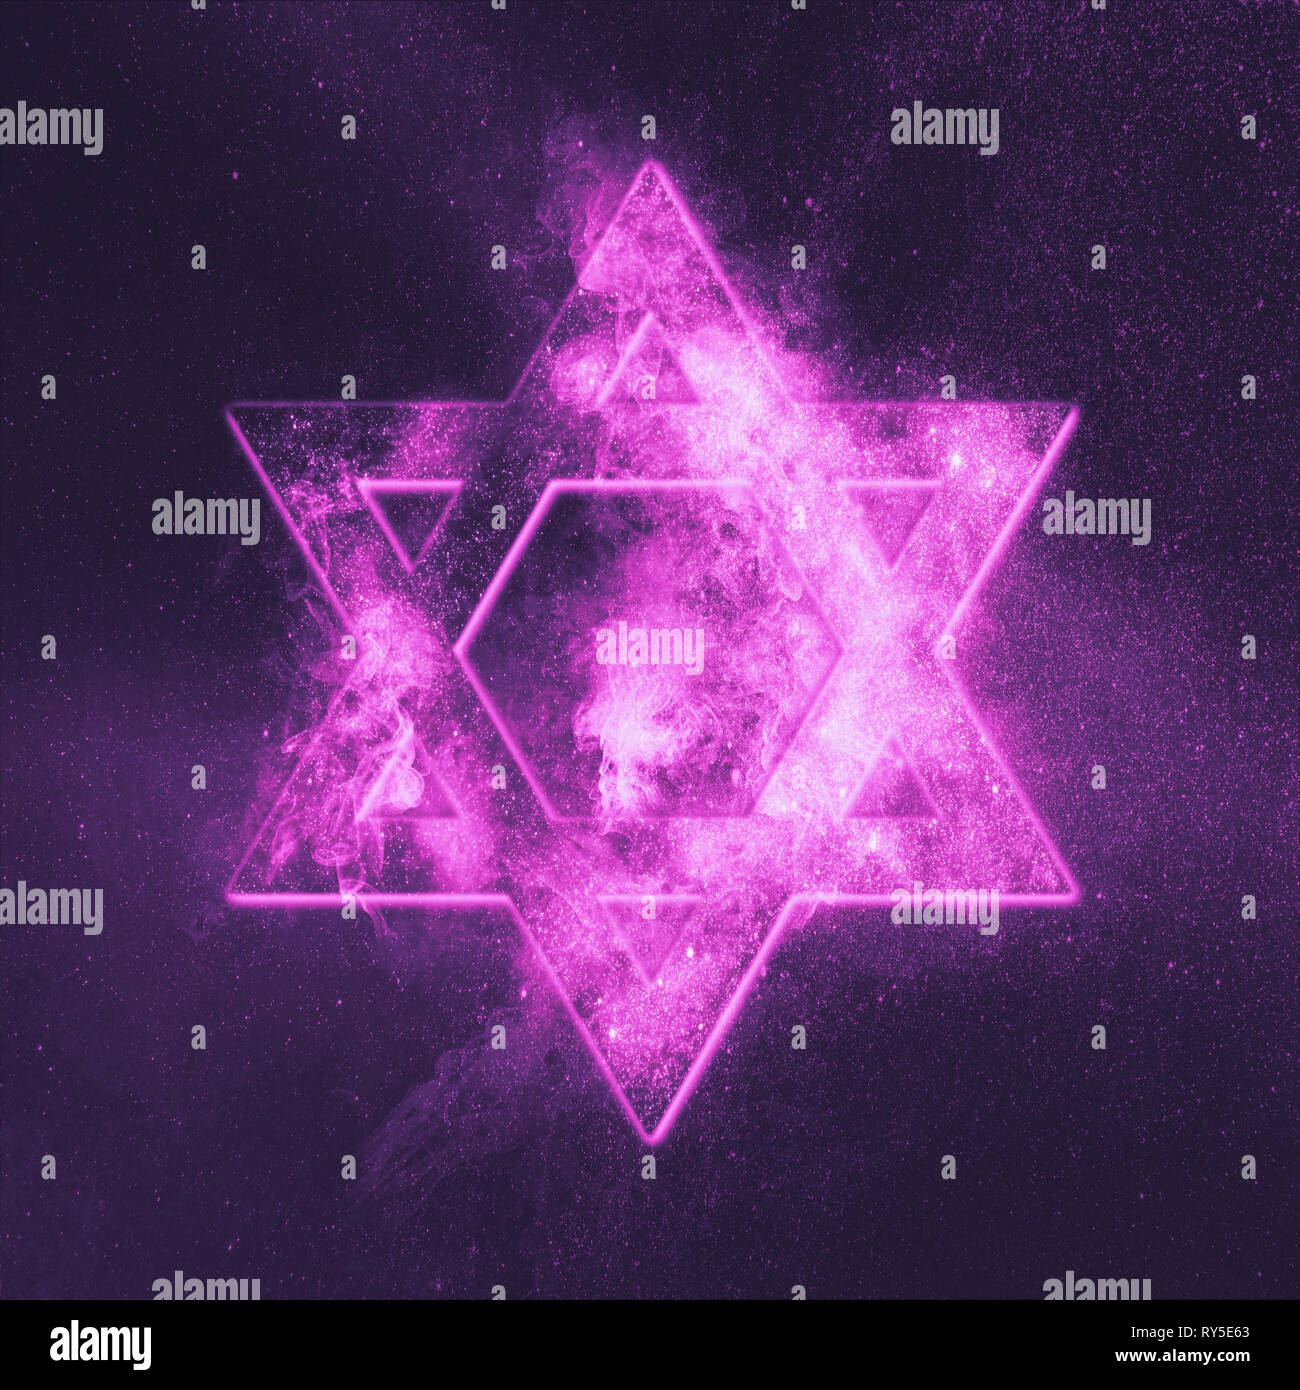 Magen David symbol, Star of David. Abstract night sky background. - Stock Image